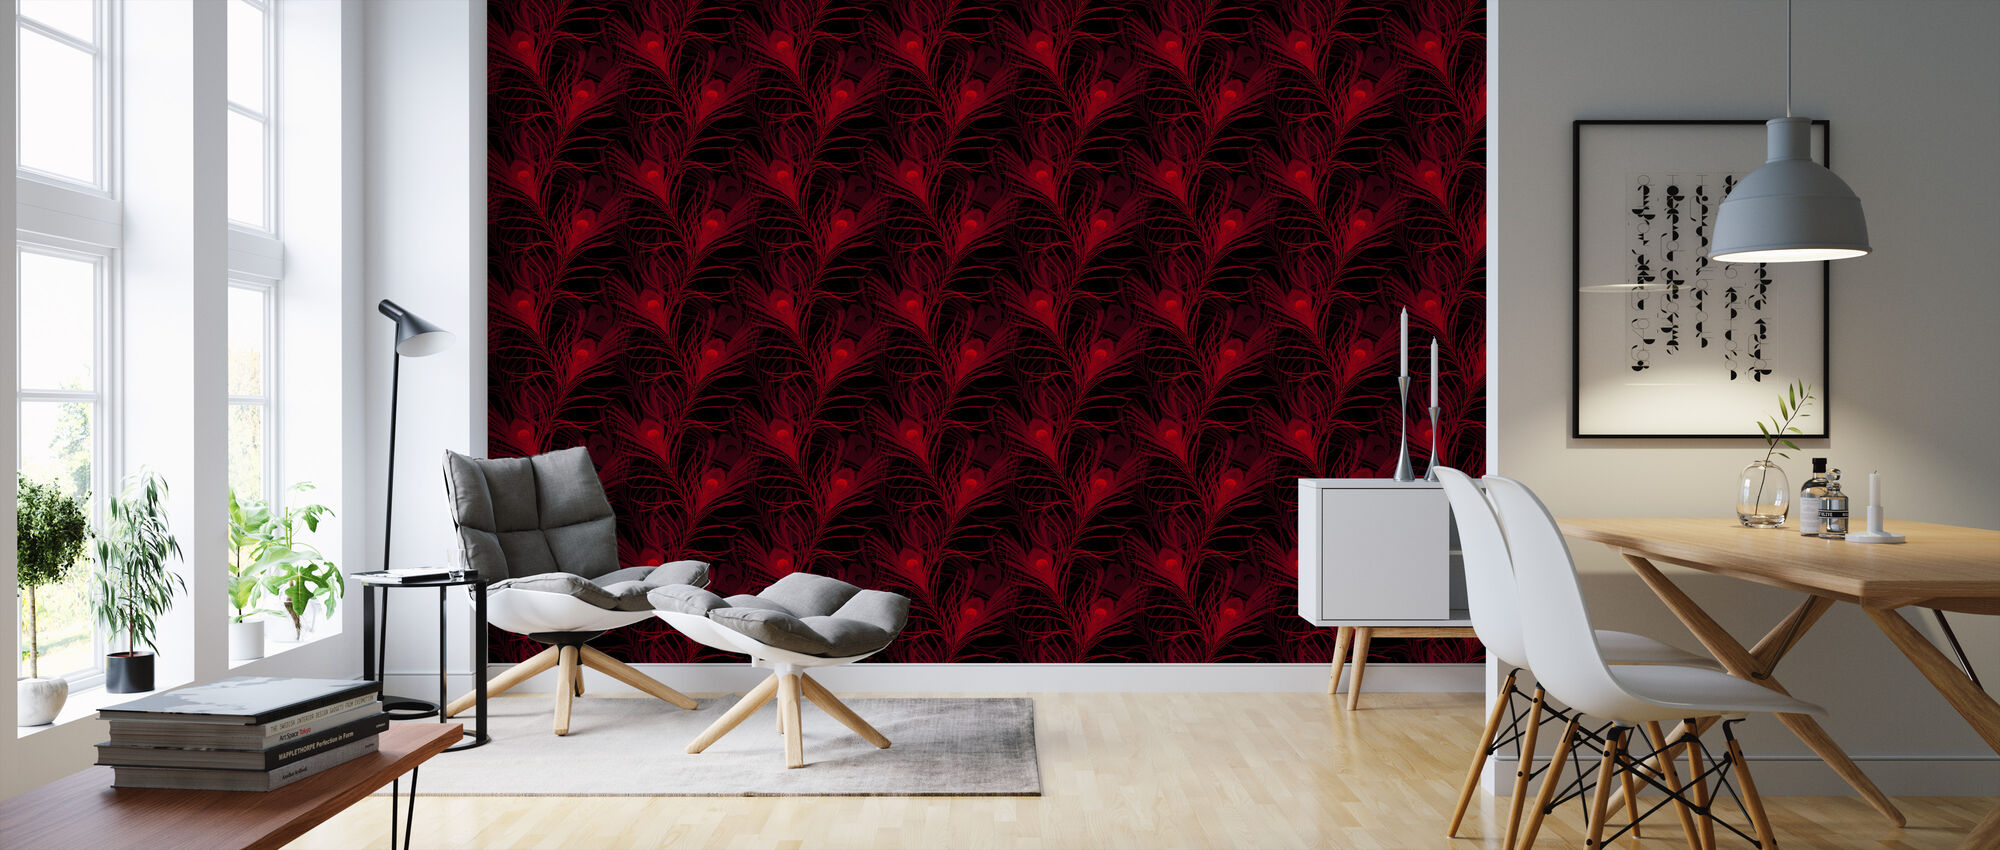 Peacock Glowing Red - Wallpaper - Living Room